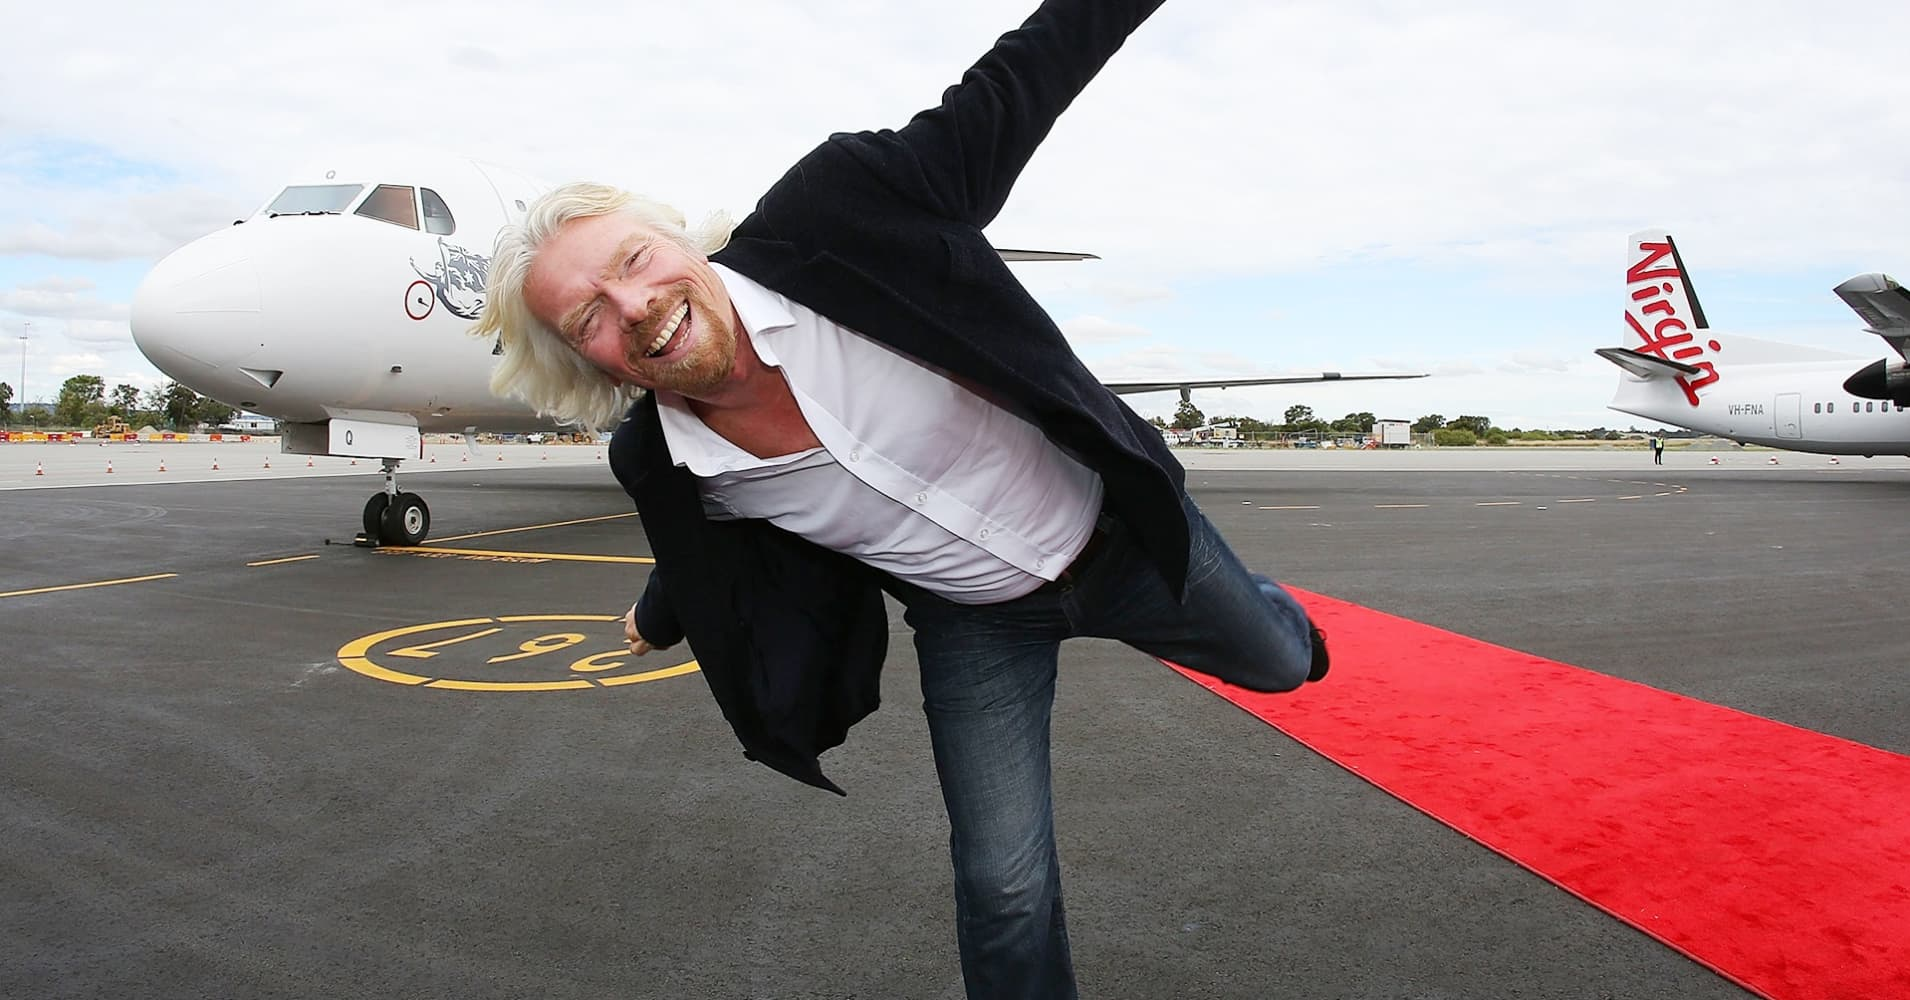 Sir Richard Branson poses in front of an aircraft at Perth Airport on May 7, 2013 in Perth, Australia.